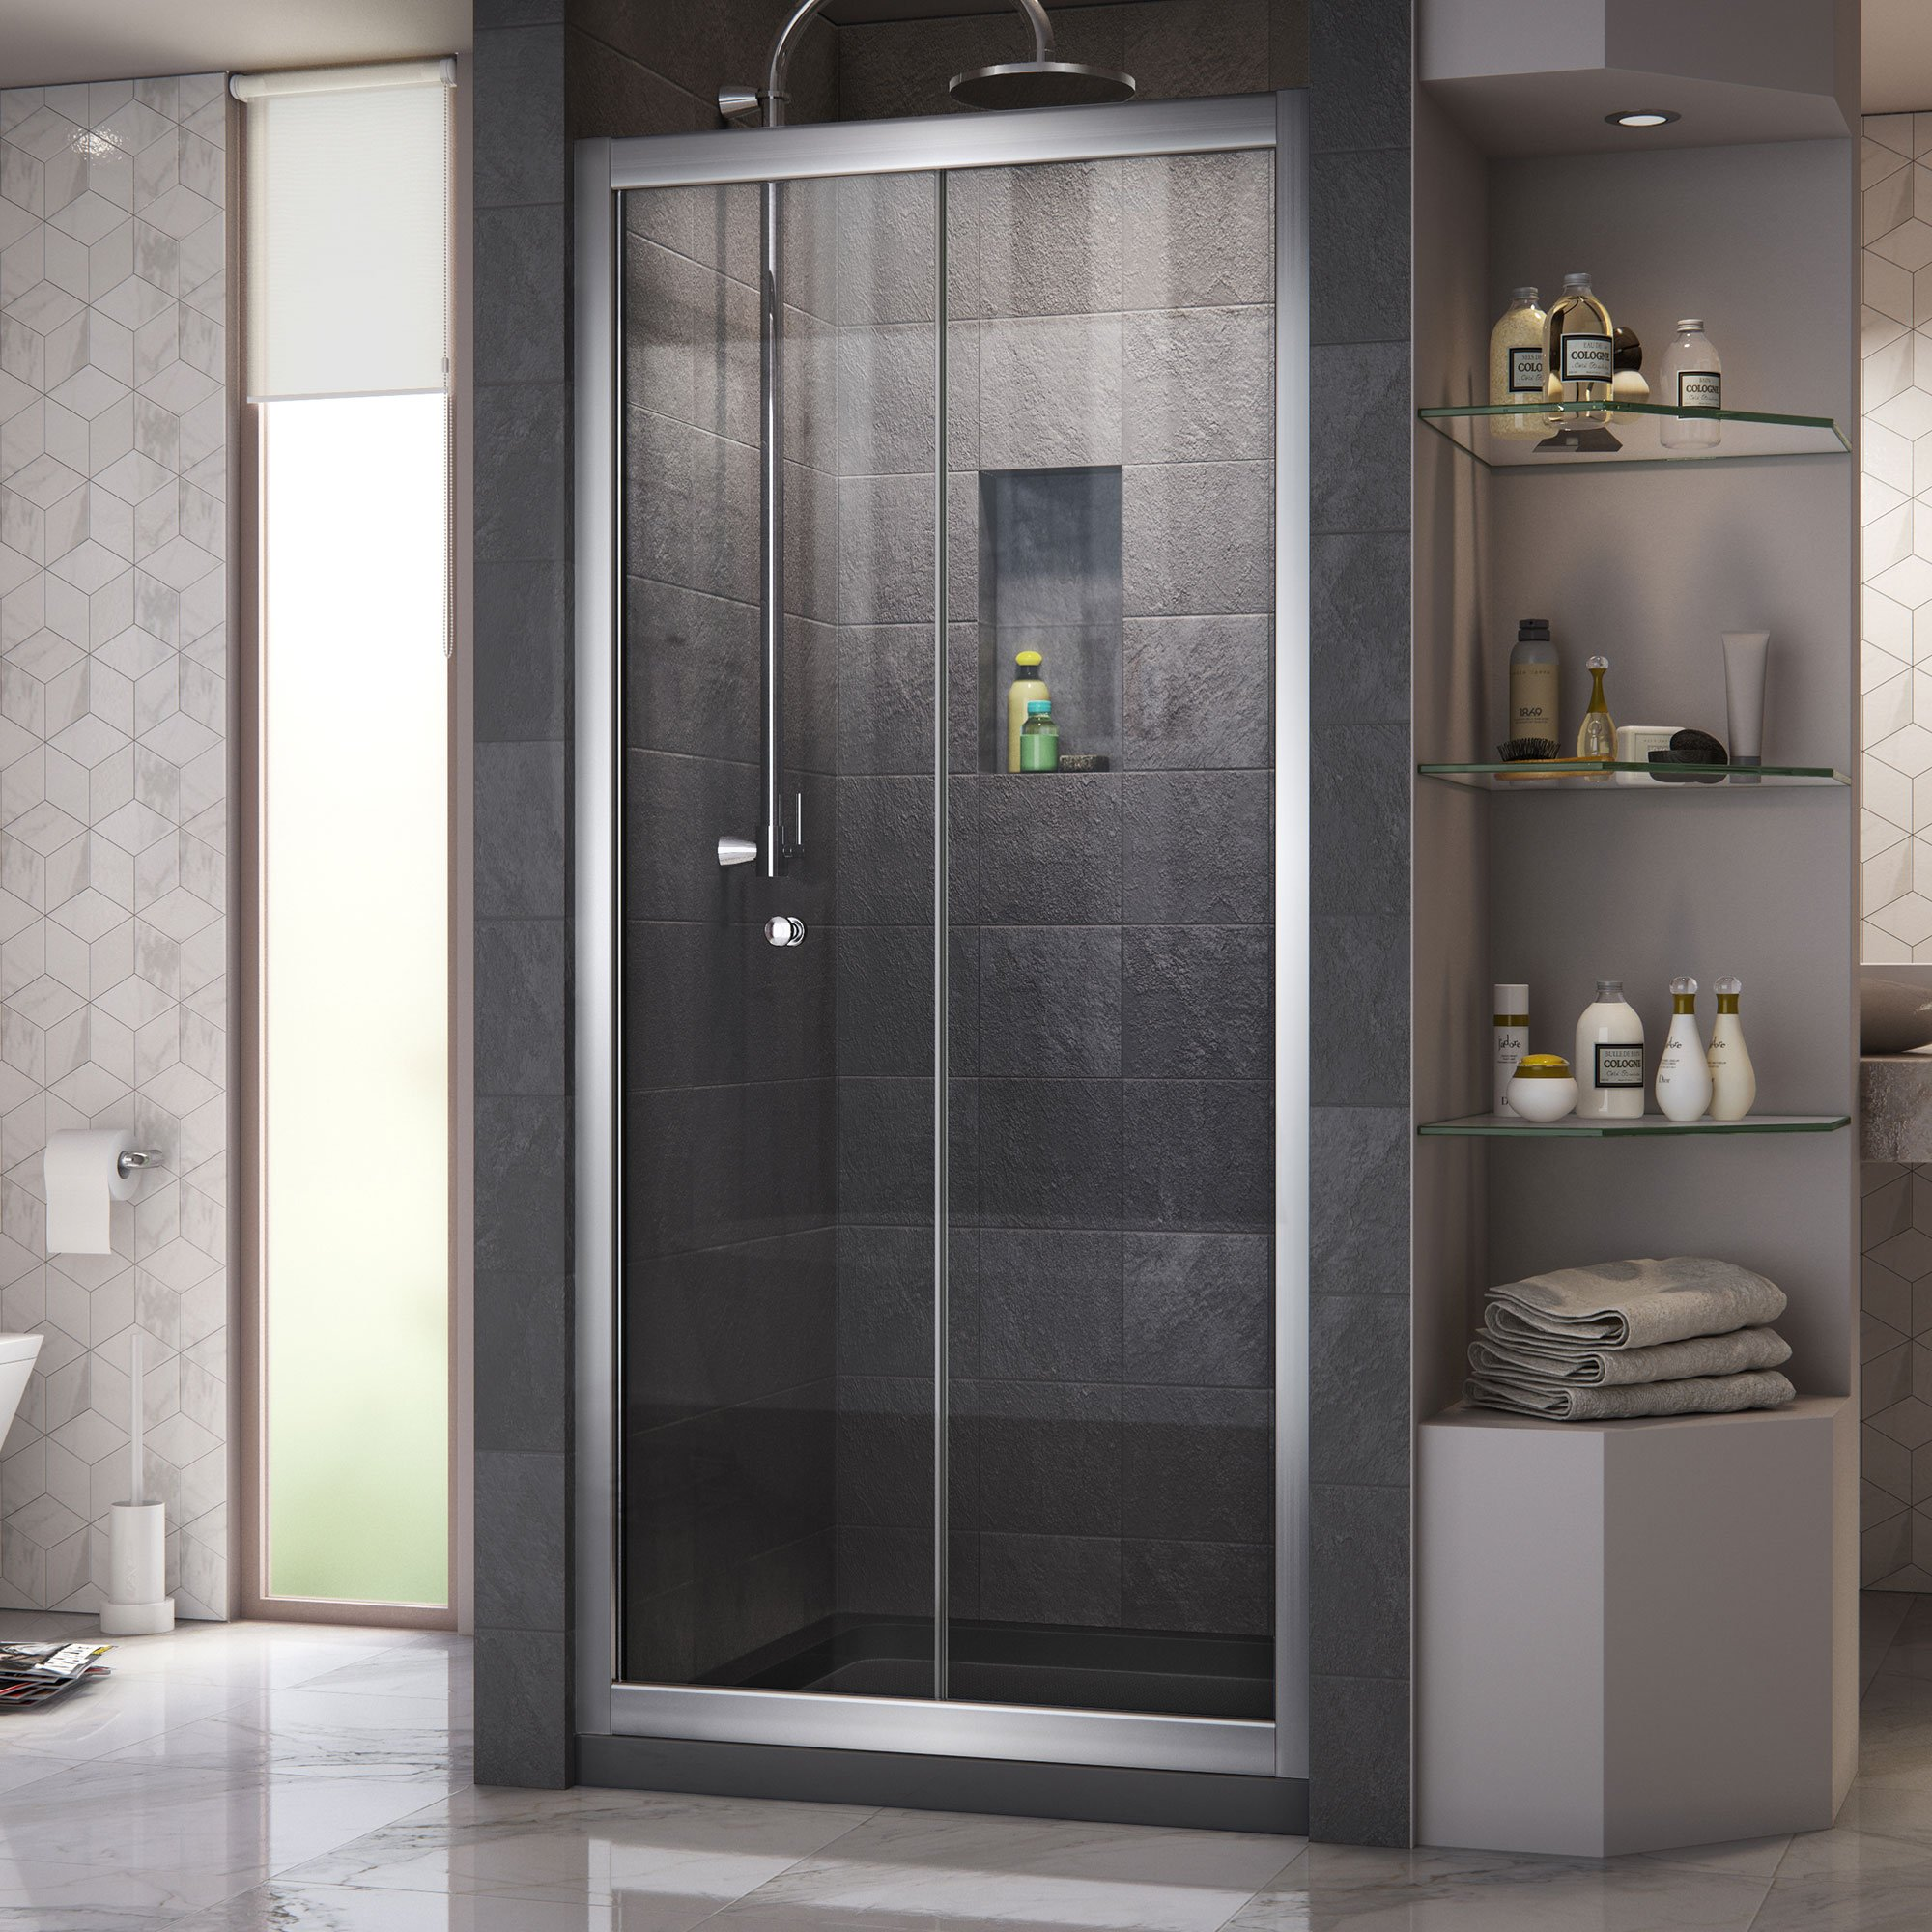 DreamLine Butterfly 34-35 1/2 in. Width, Frameless Bi-Fold Shower Door, 1/4'' Glass, Chrome Finish by DreamLine (Image #1)